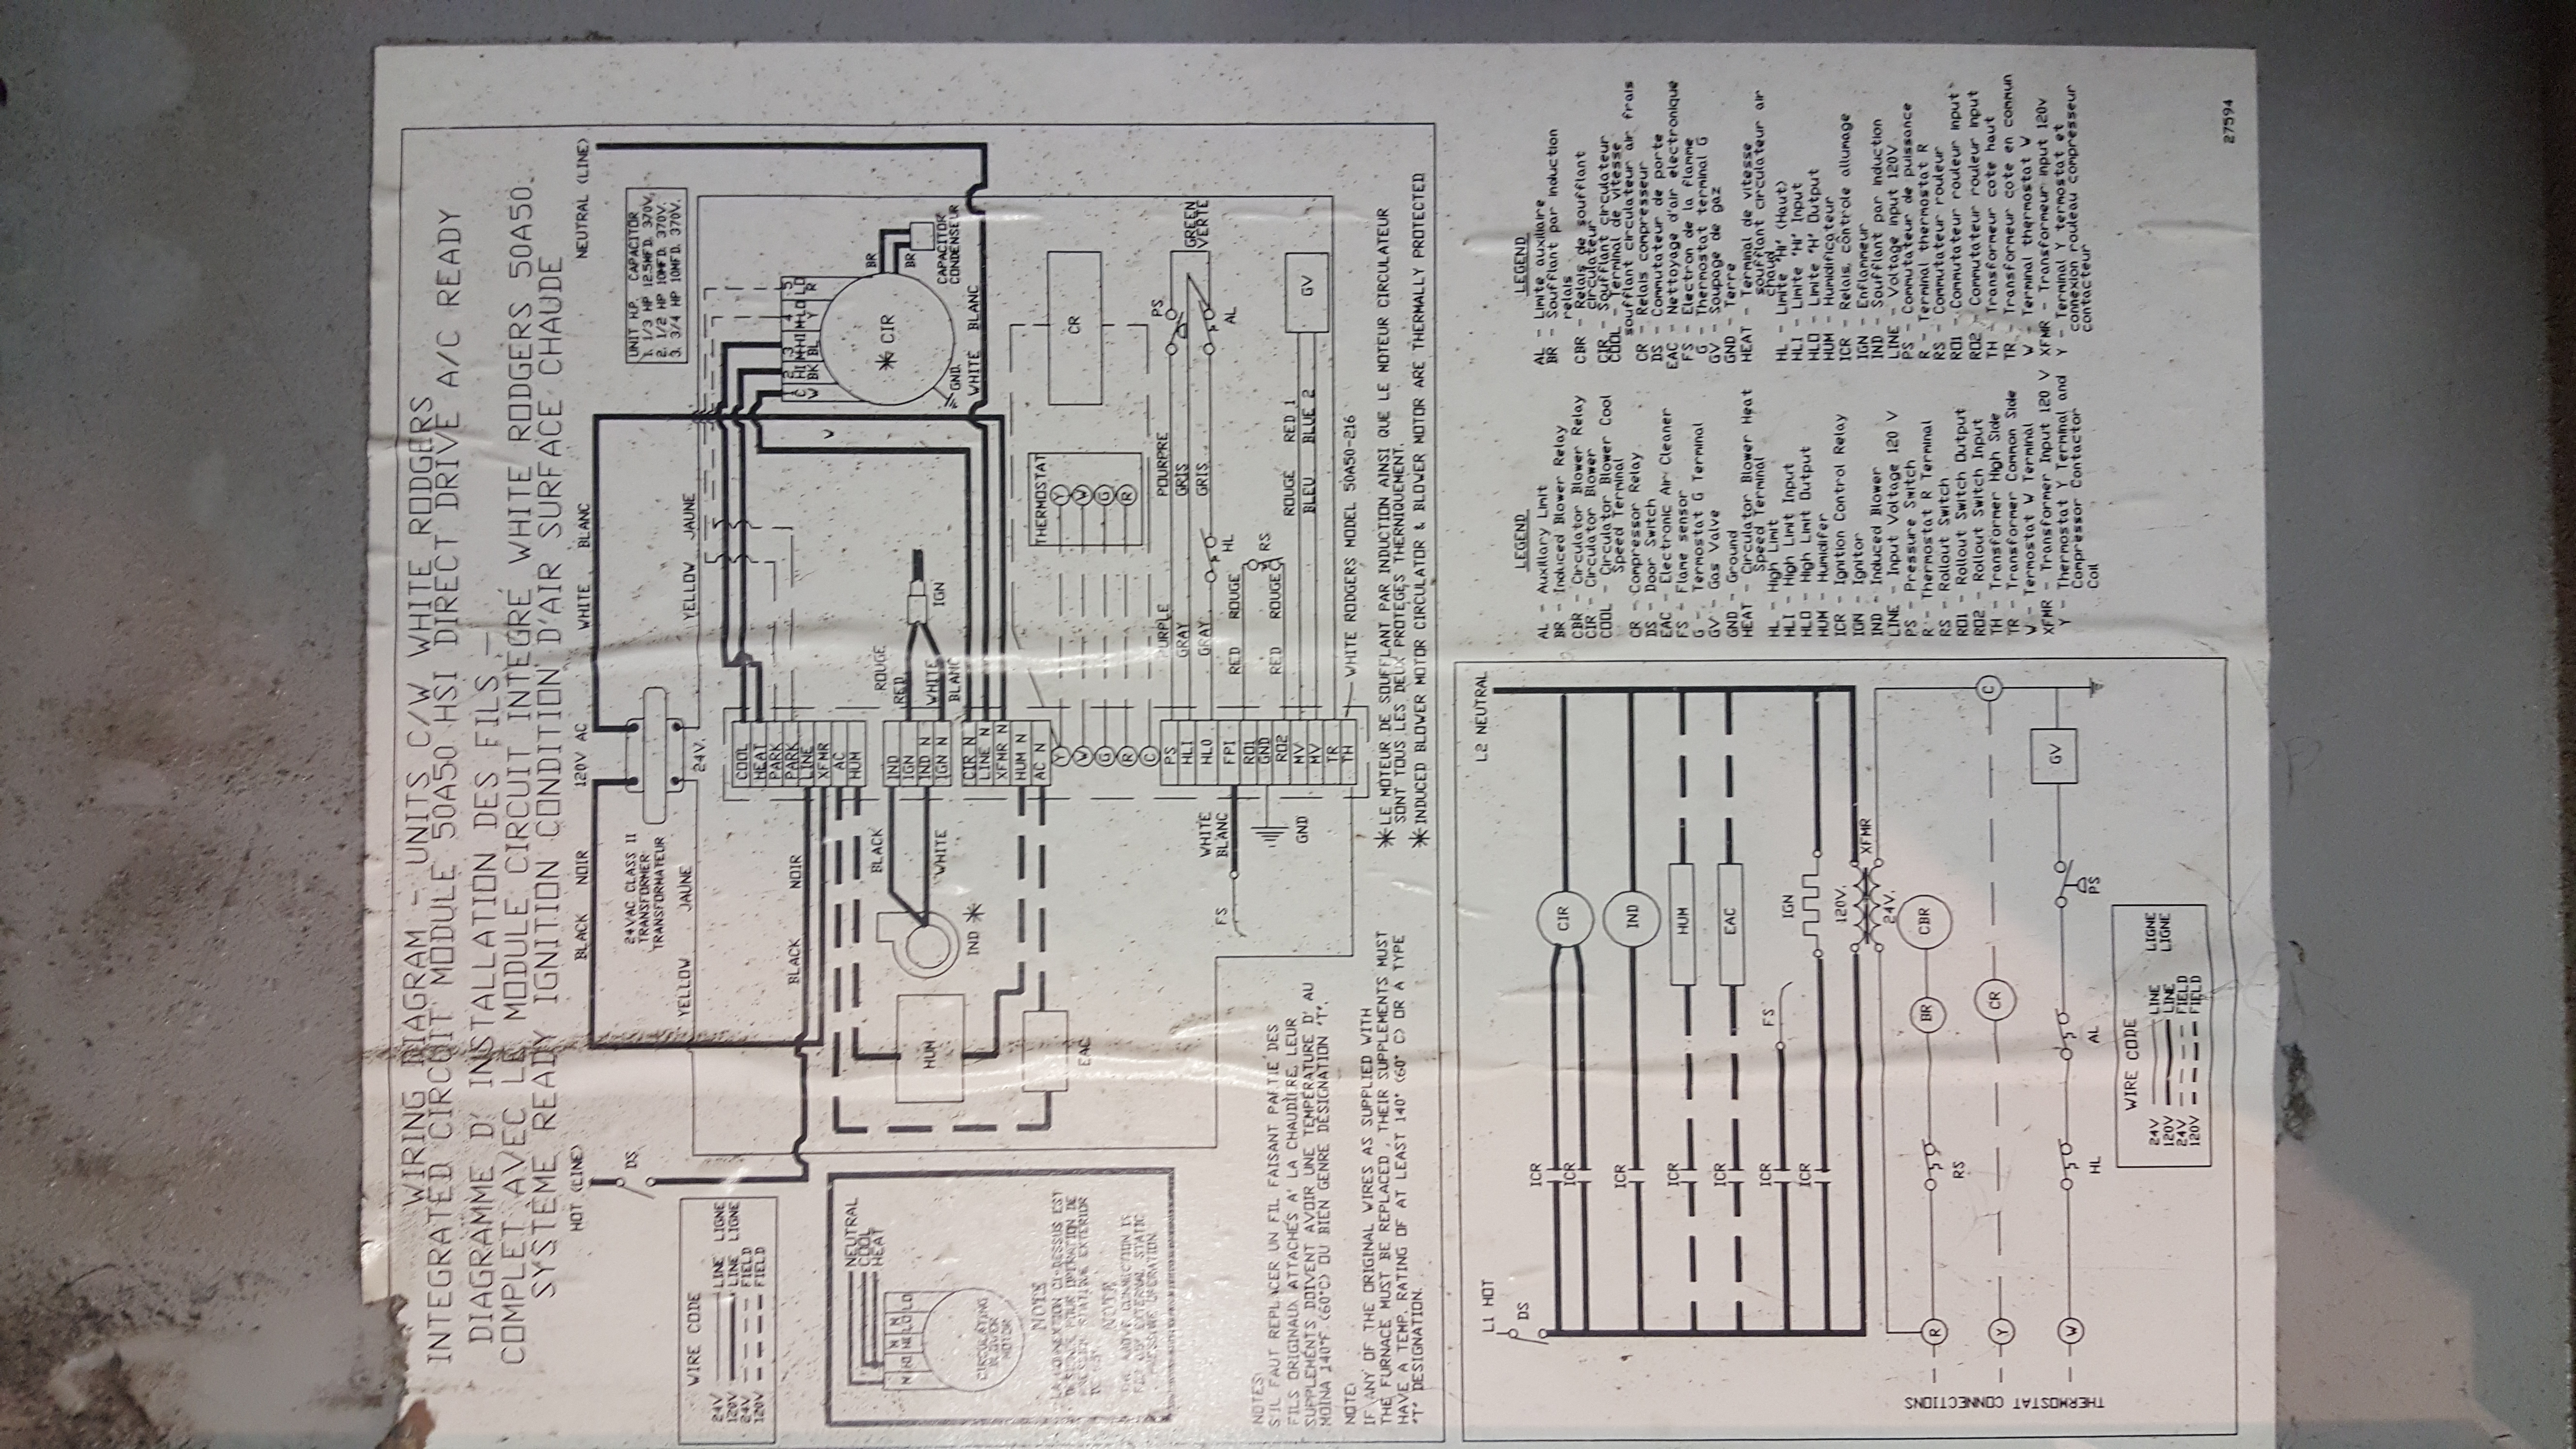 Olsen Oil Furnace Wiring Diagram I Have A Ultramax That Is Not Blowing Hot Air Need 20160130 183511